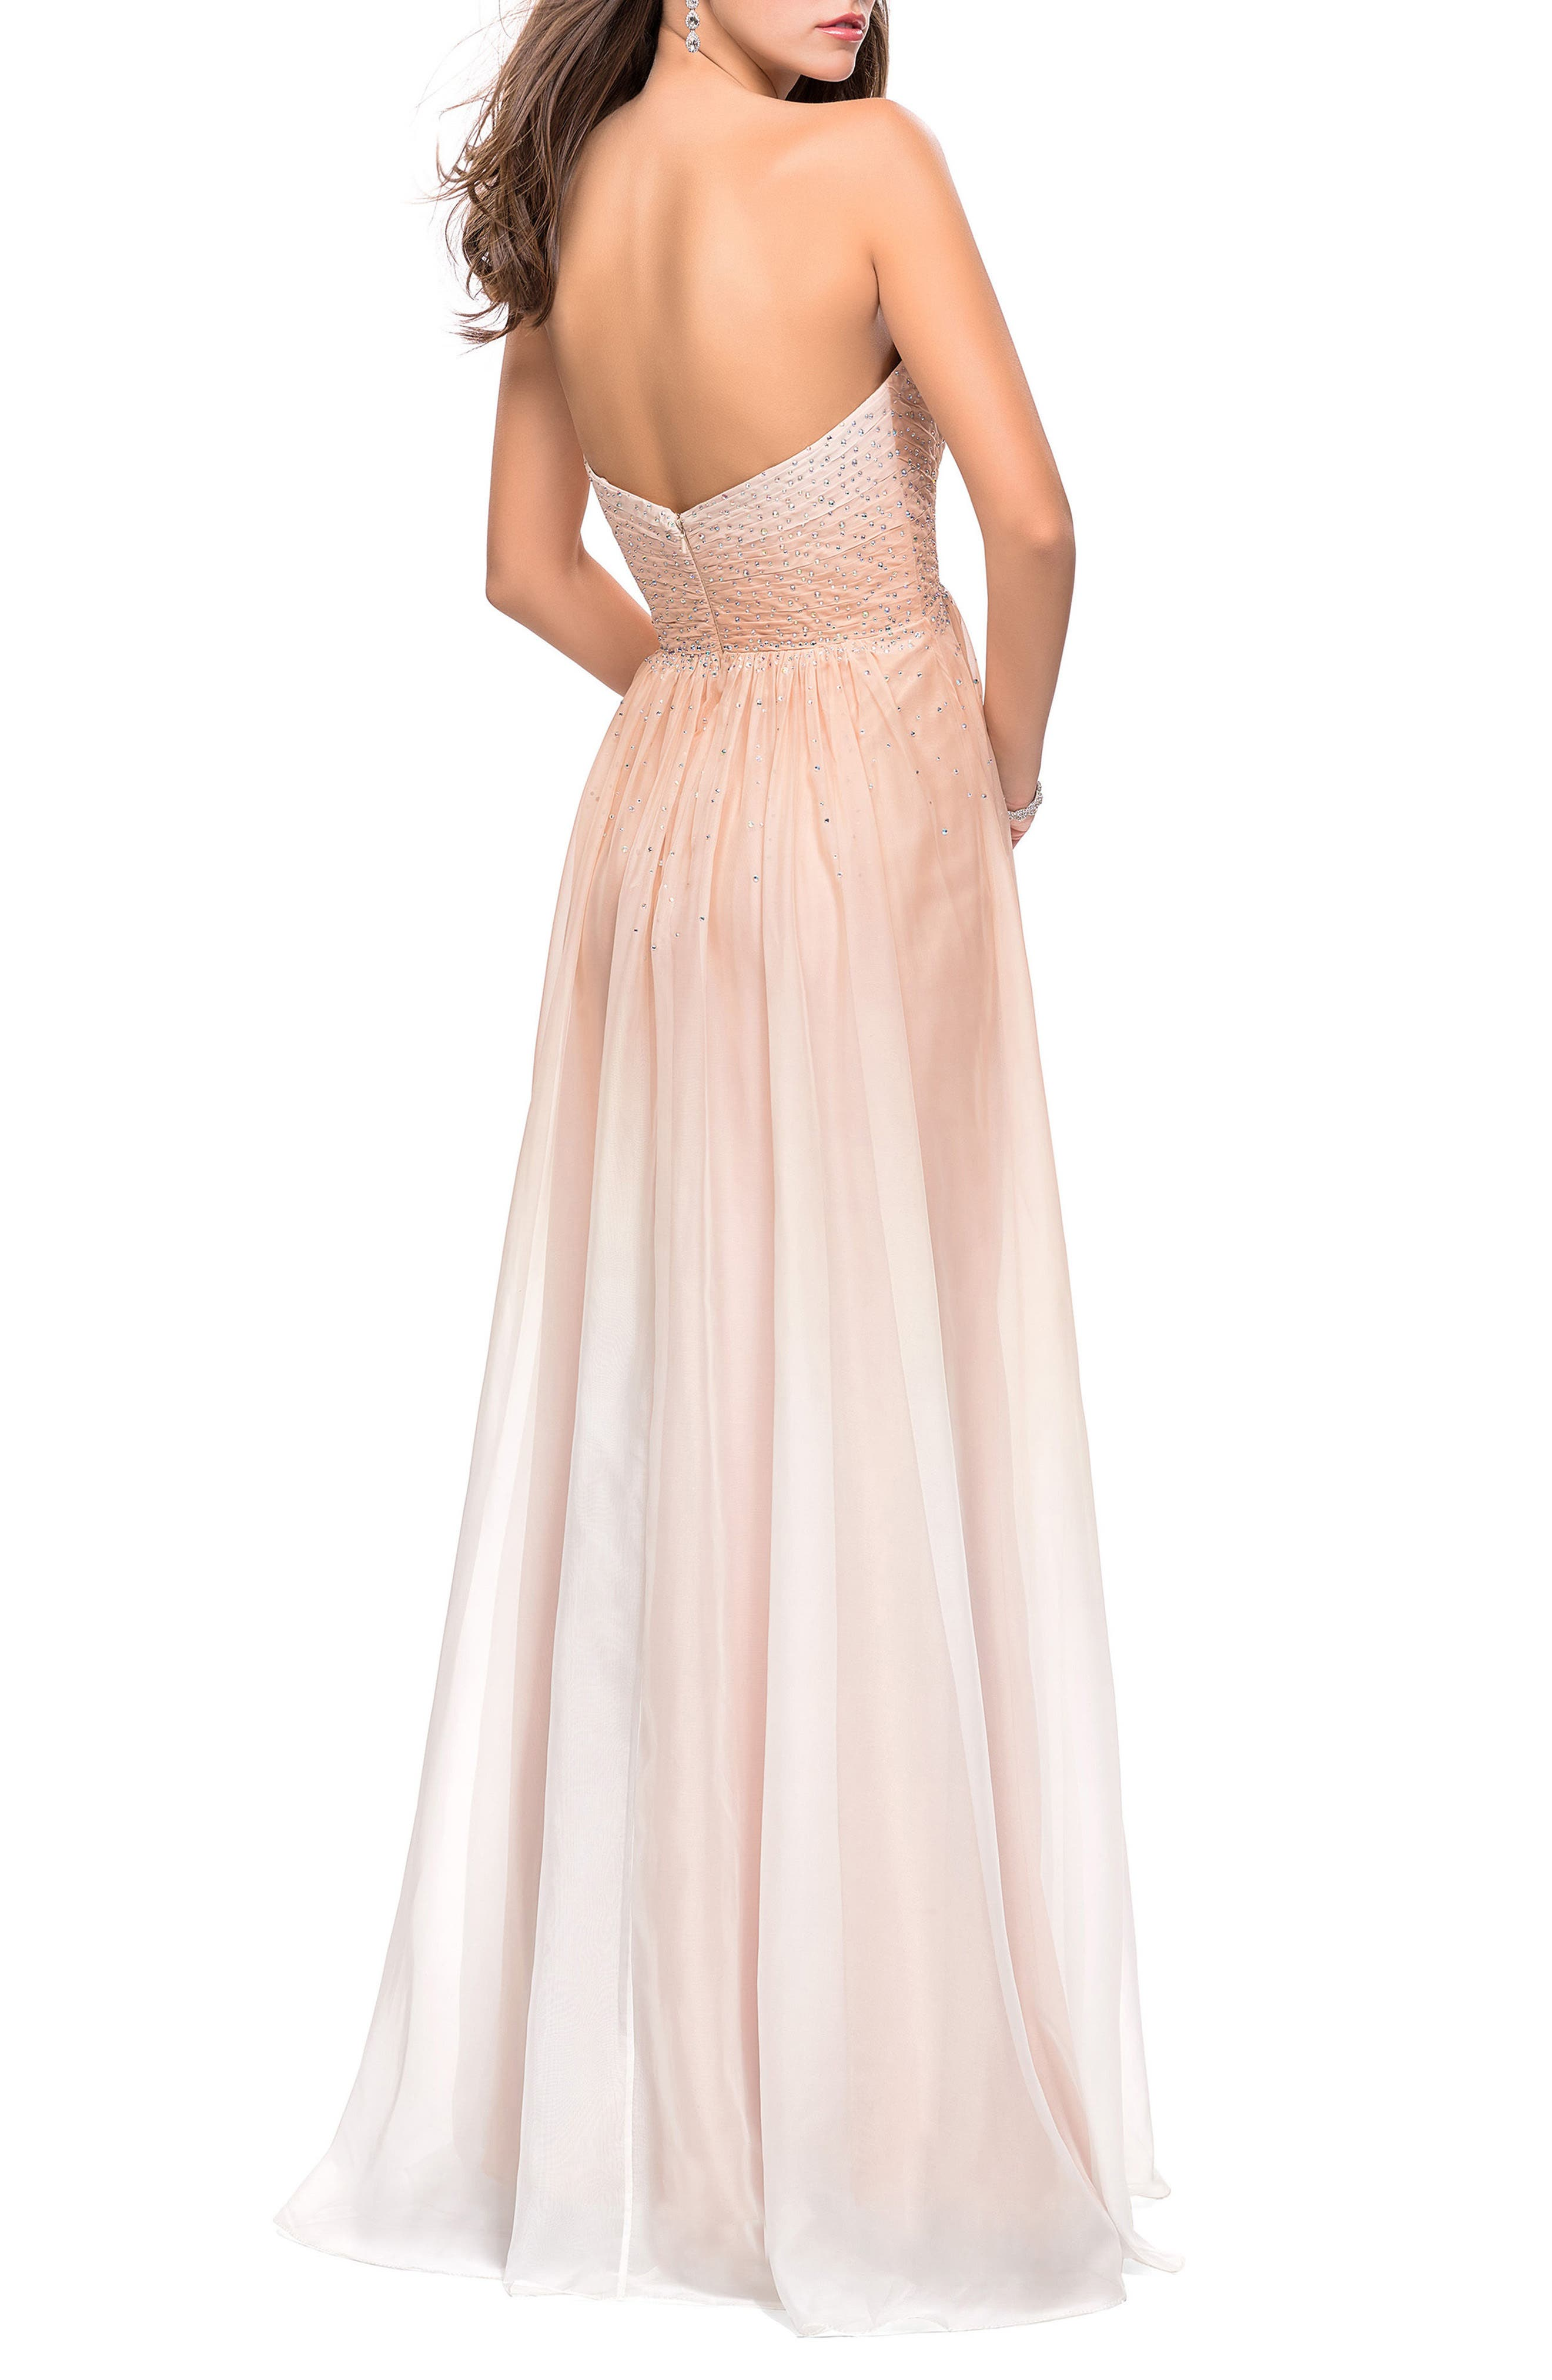 Strapless Chiffon Gown,                             Alternate thumbnail 2, color,                             250